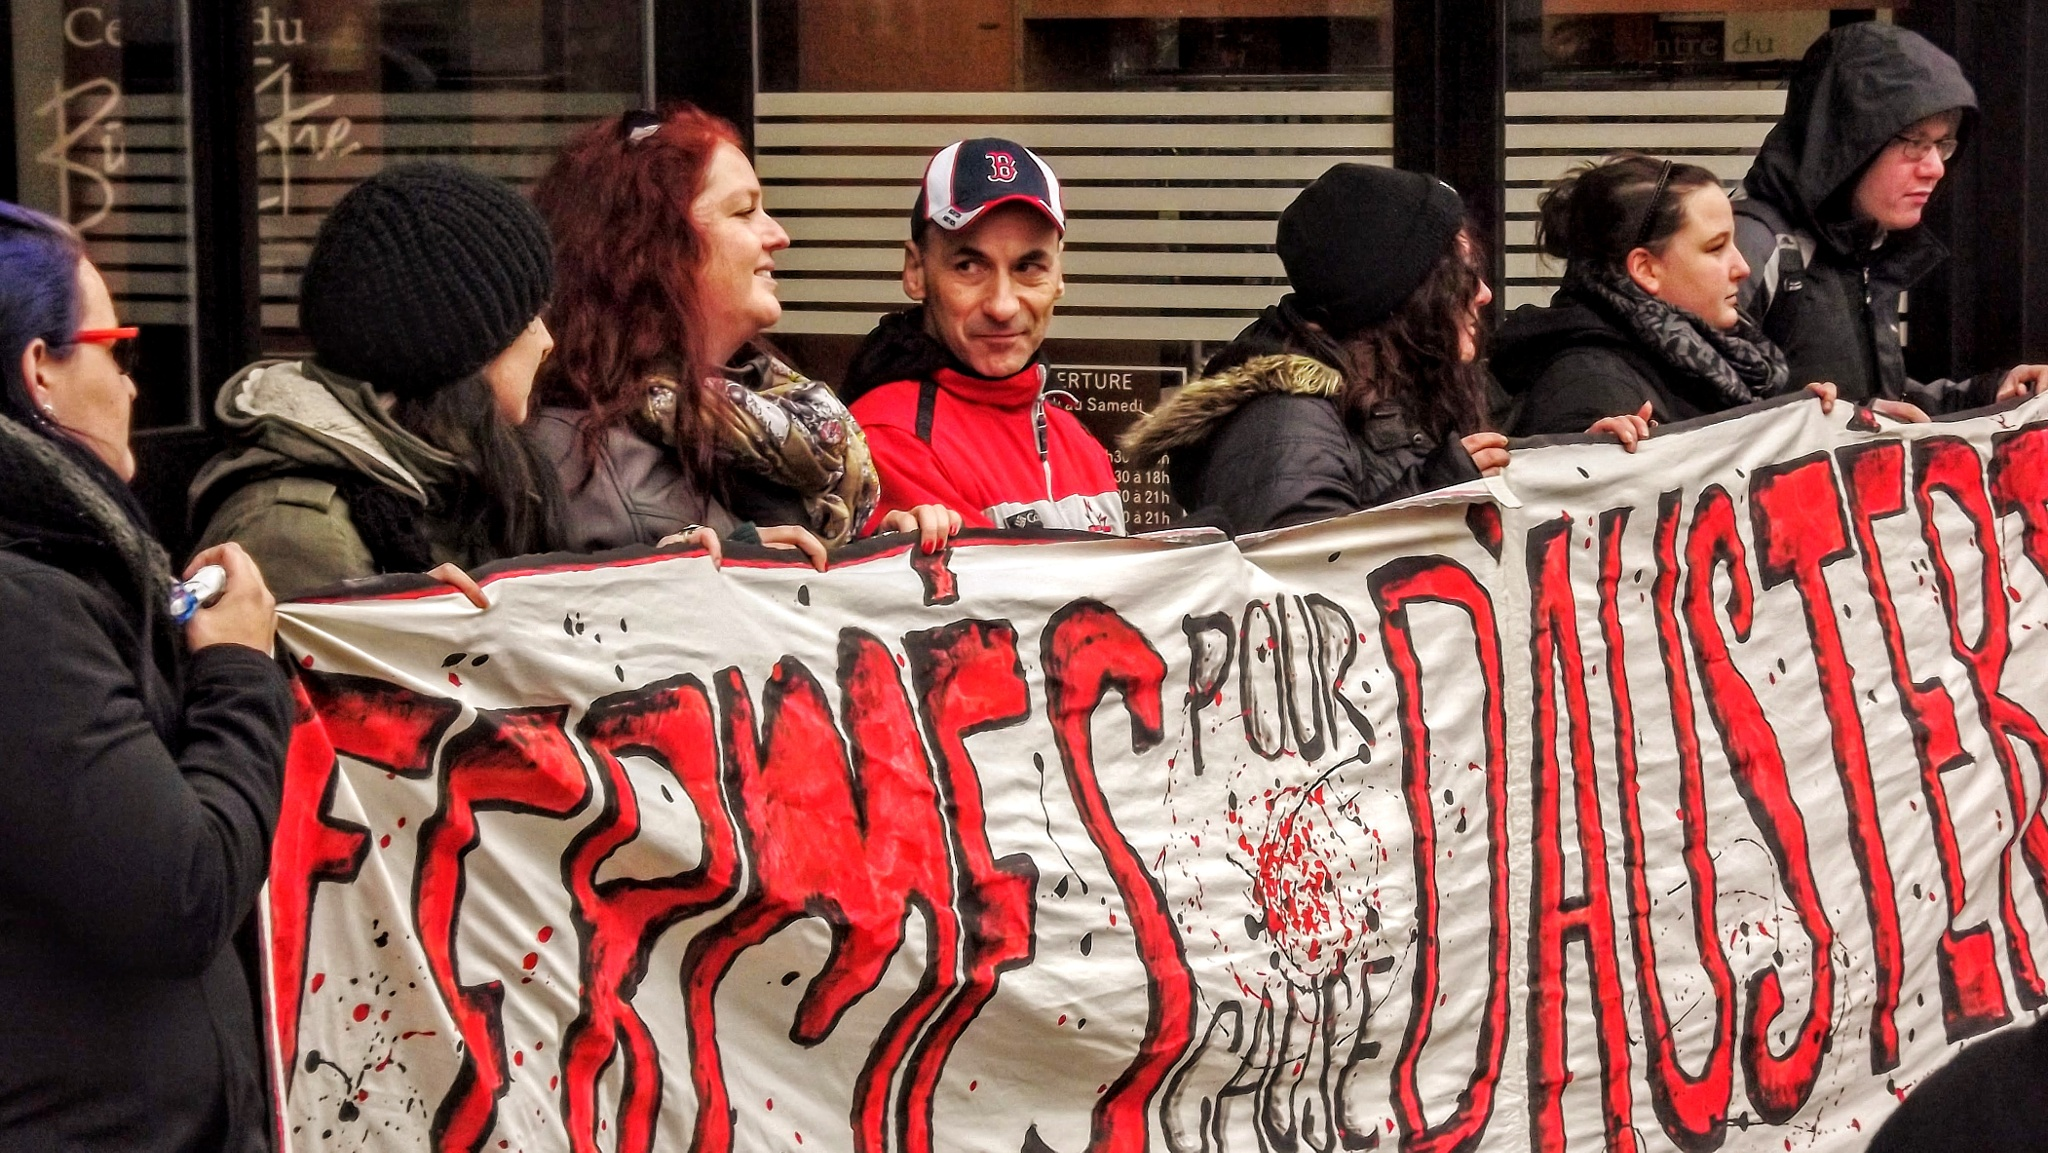 On strike in front of the bank by real.michaud.5036